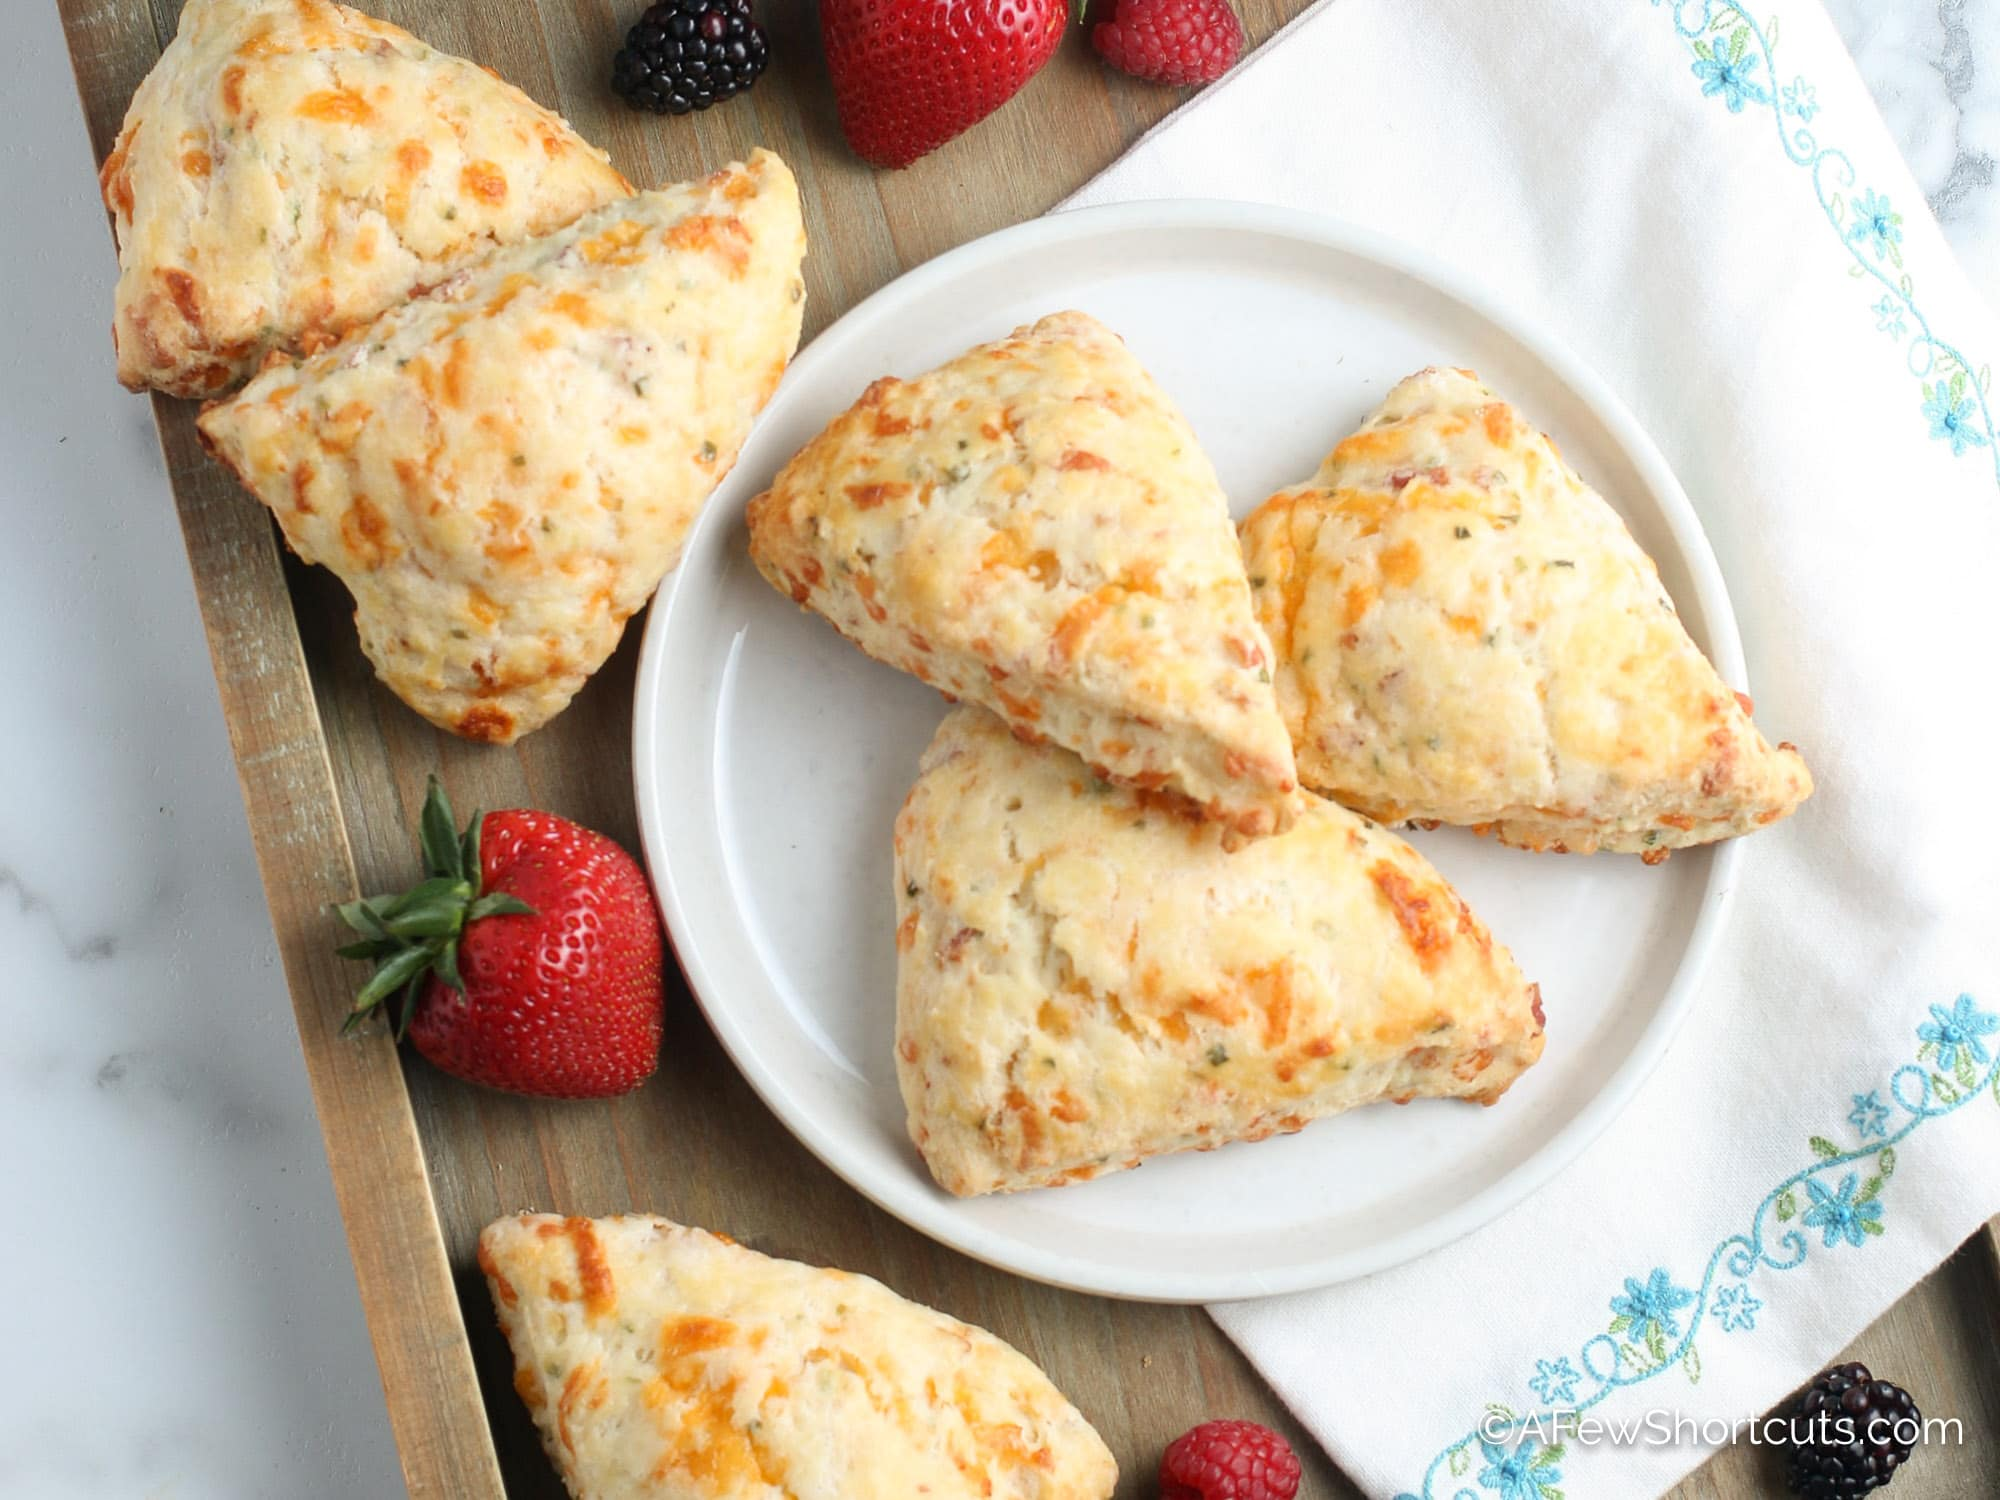 Bacon Cheddar Scones on plate with strawberries